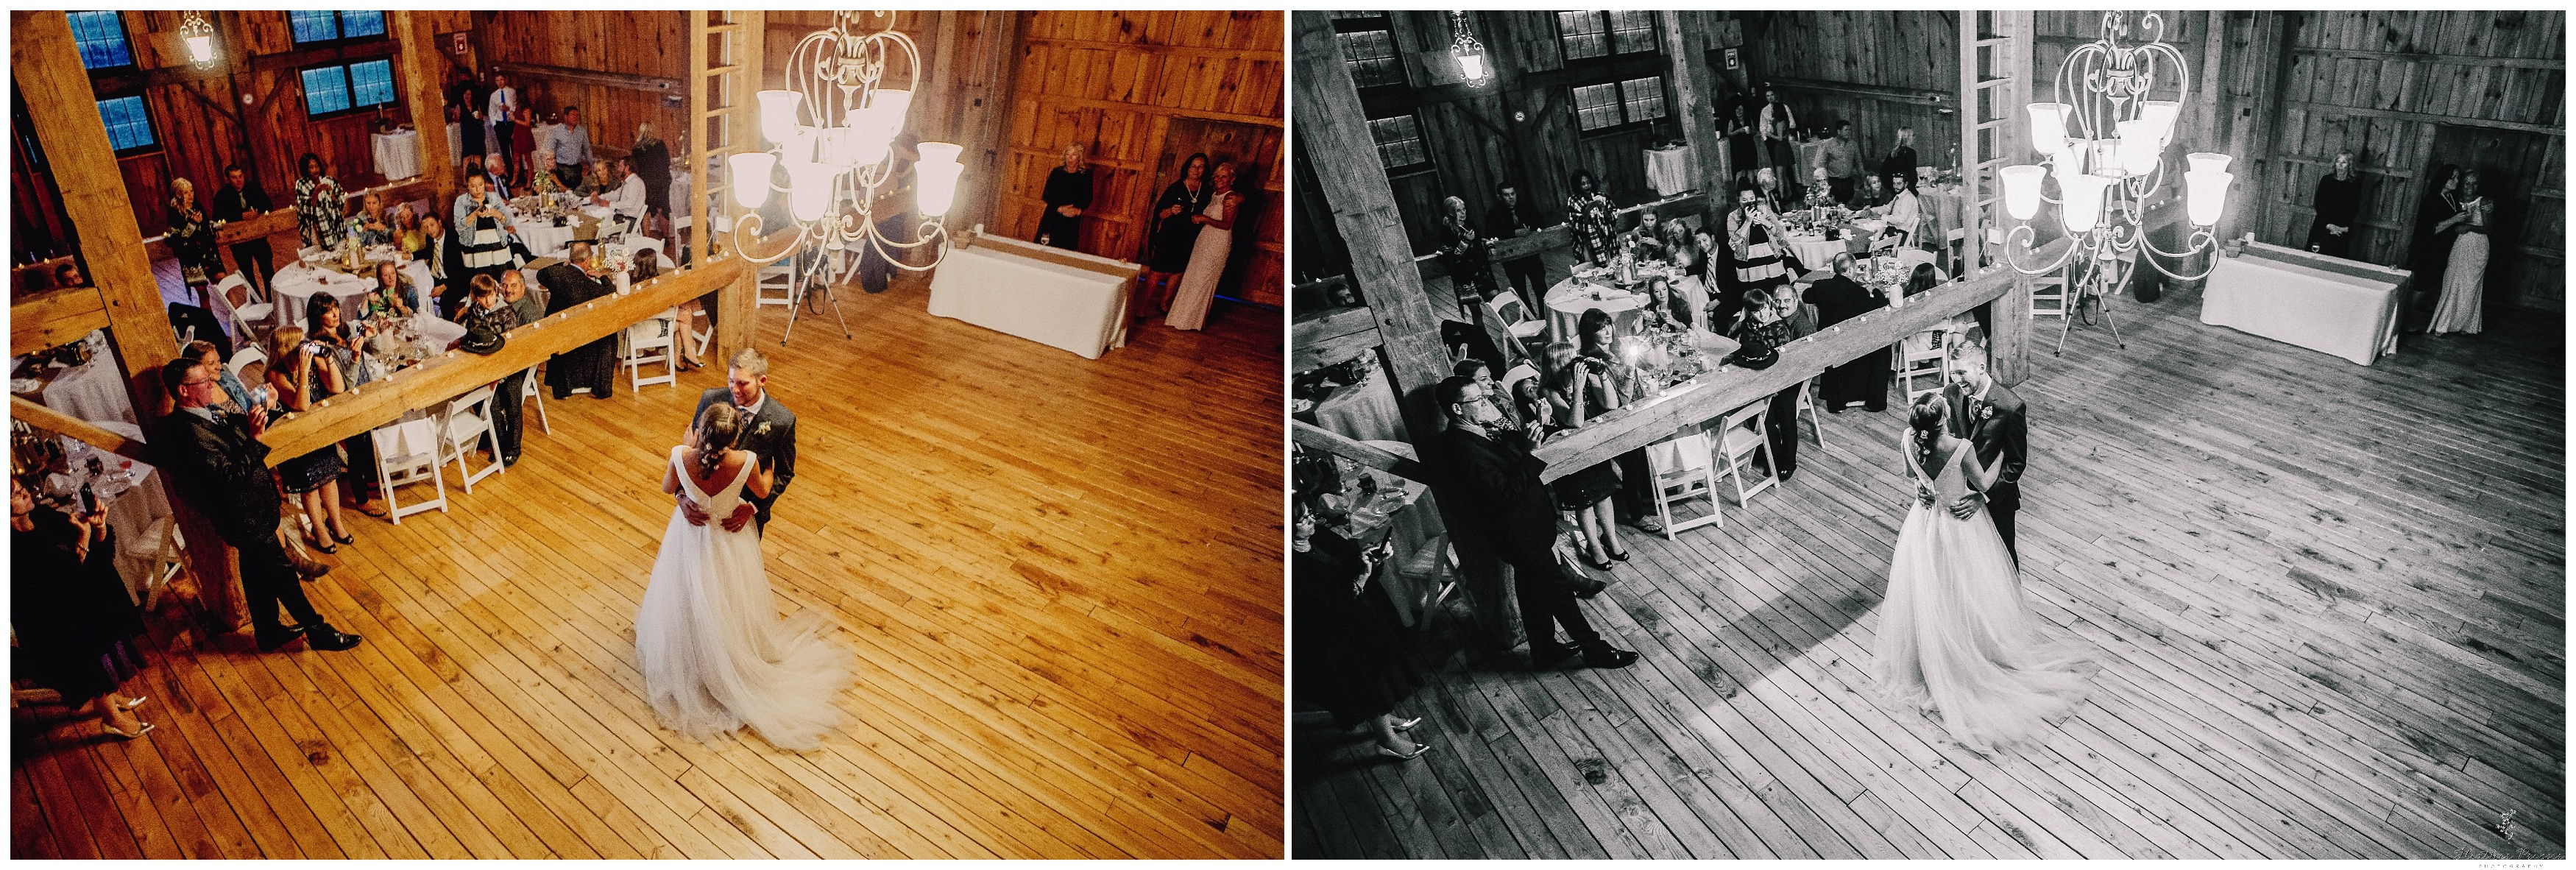 Ontario Barn Wedding_2276.jpg